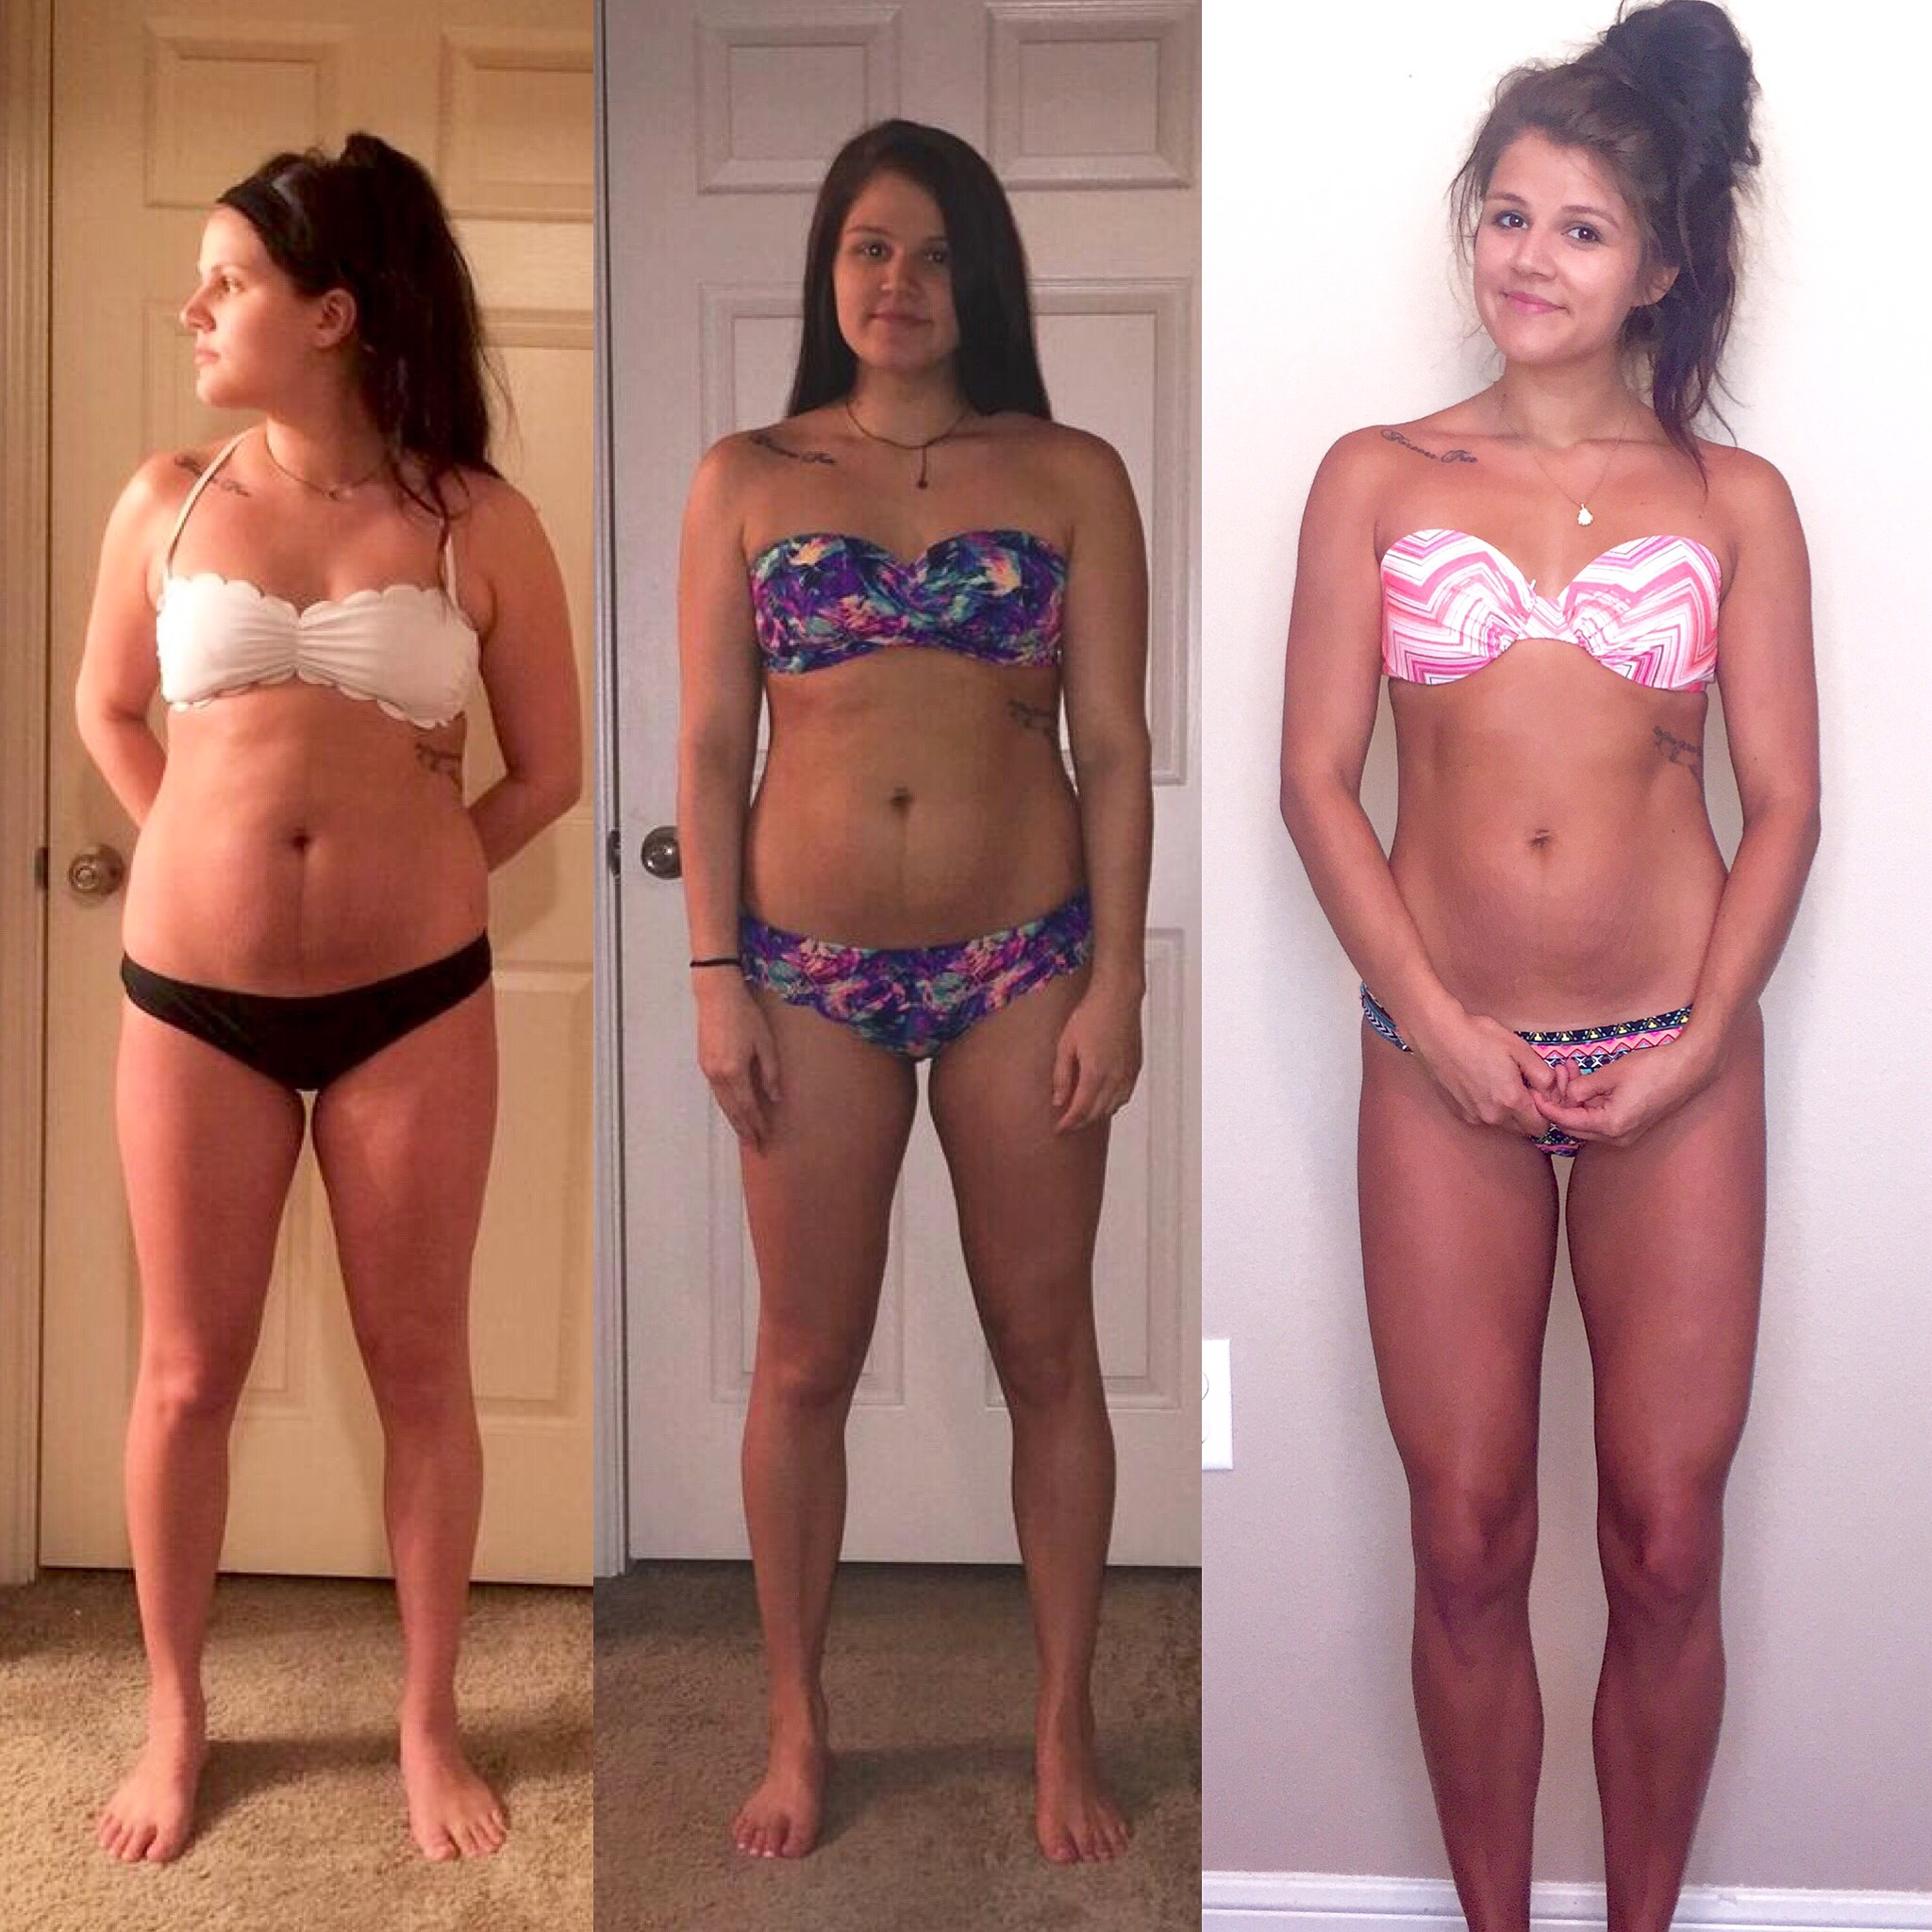 Nicole lost 52 pounds! See my before and after weight loss pictures, and read amazing weight loss success stories from real women and their best weight loss diet plans and programs. Motivation to lose weight with walking and inspiration from before and after weightloss pics and photos.